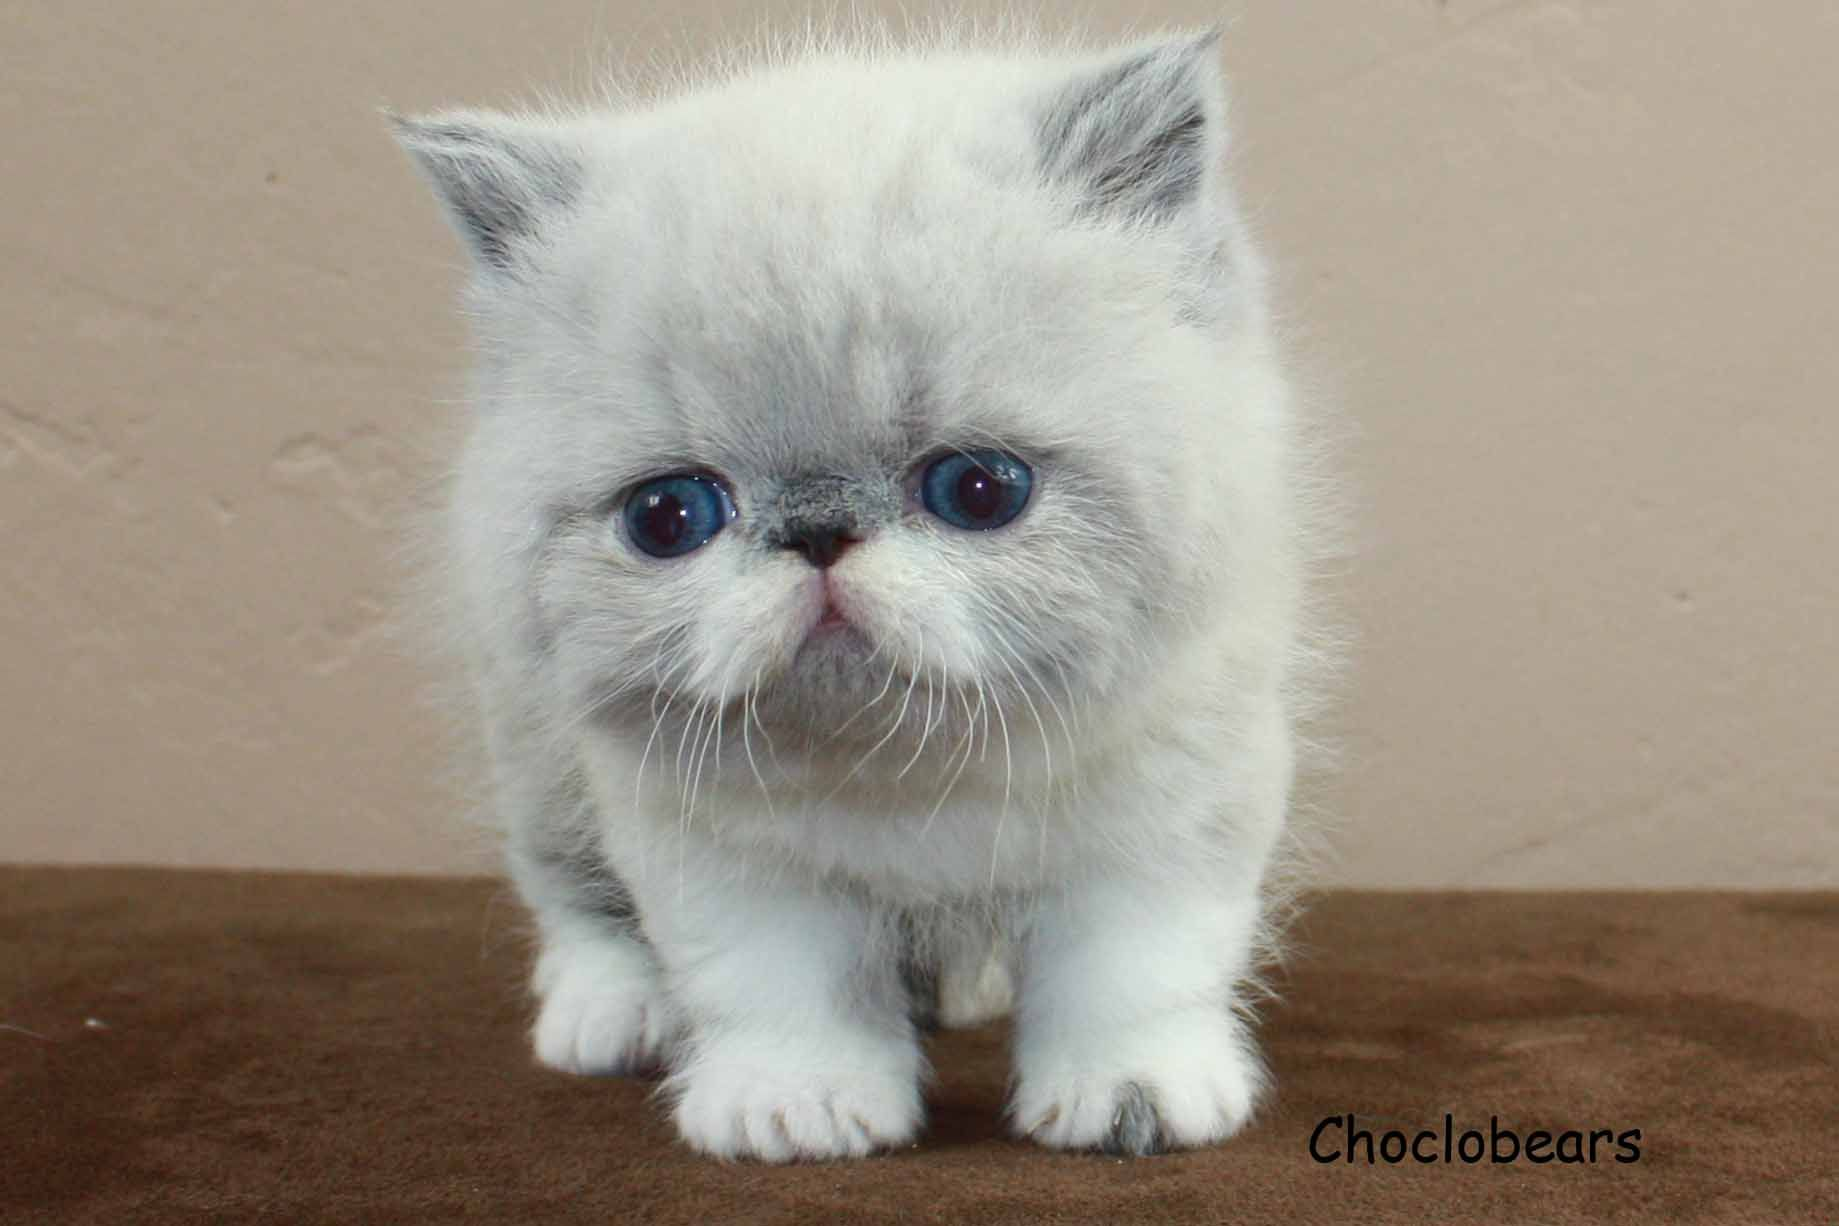 Choclobears Cattery Blue Point and White Exotic Shorthair